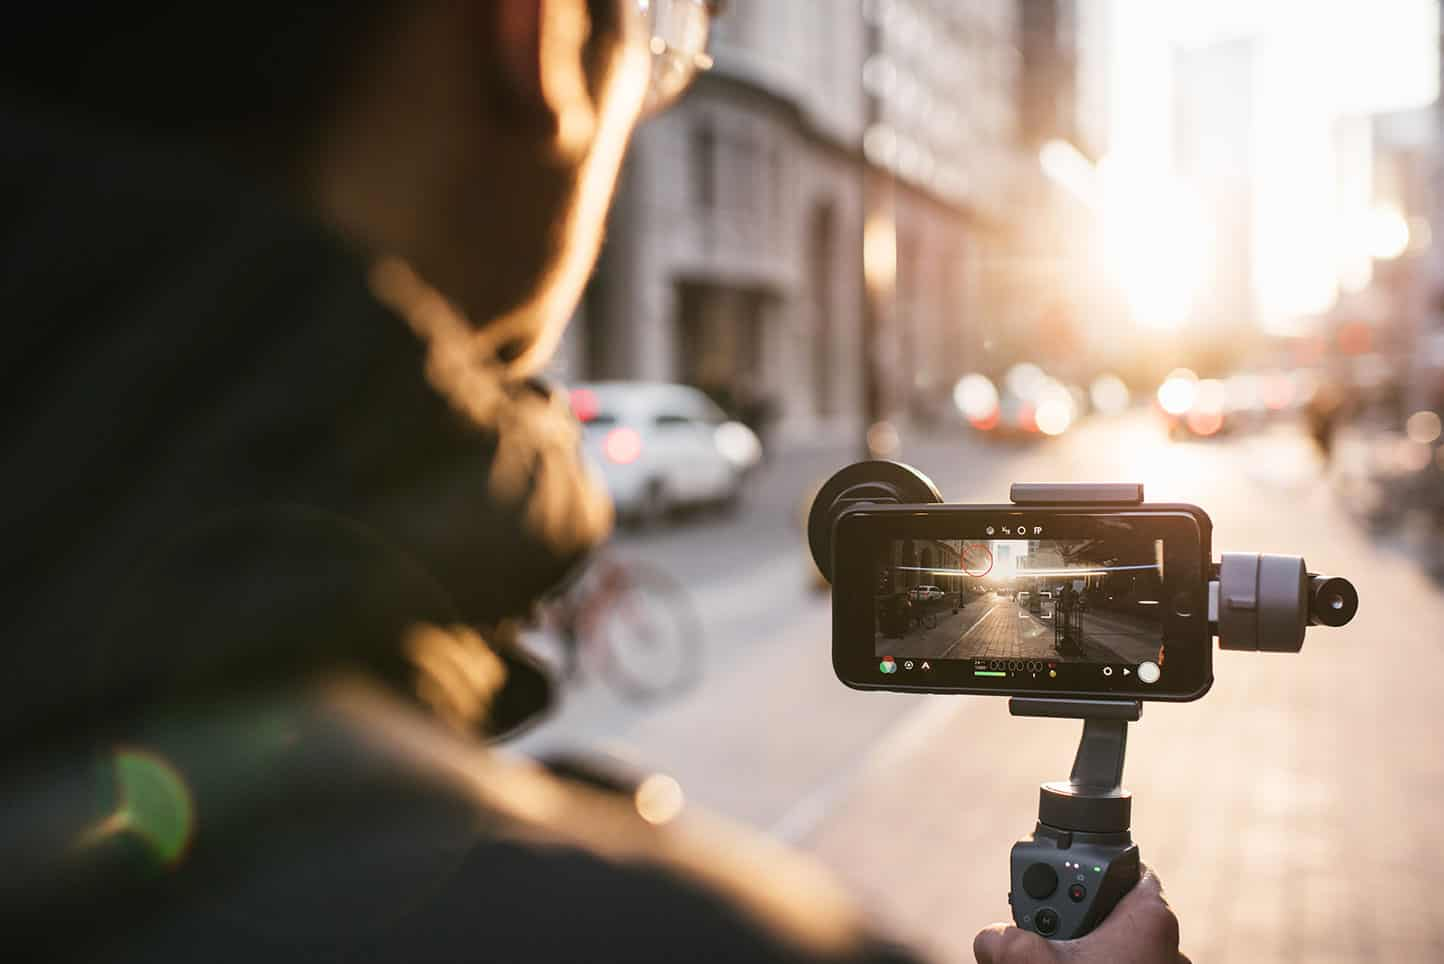 Anamorphic lens brings Hollywood look to iPhone video